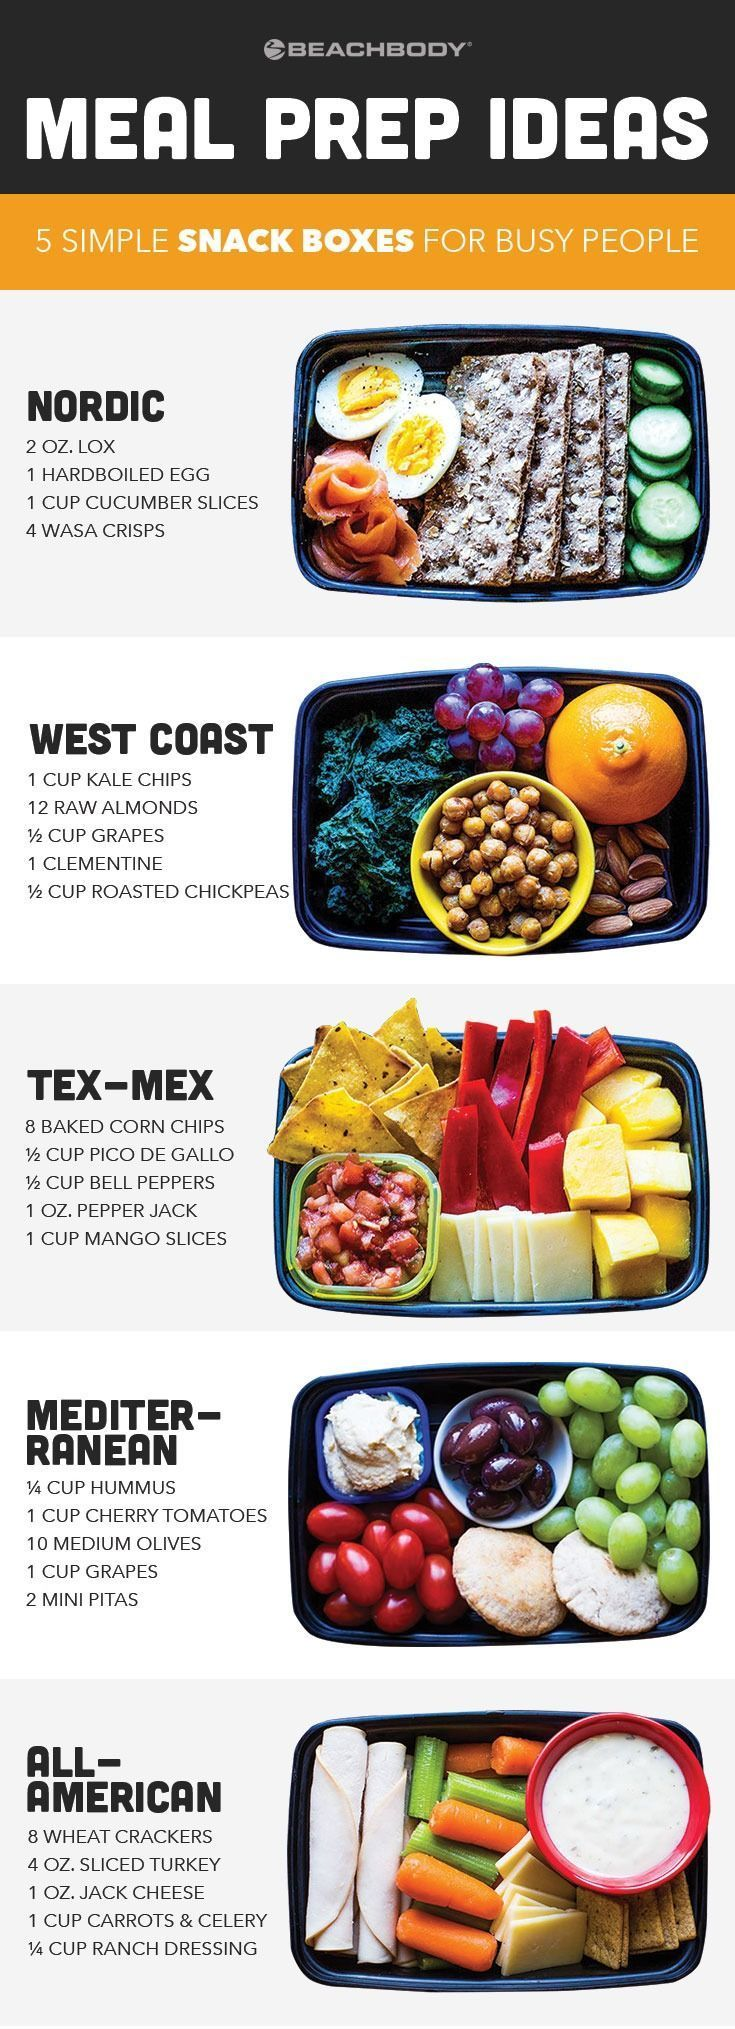 If you're busy and on the run, it can be hard to stay on track with your healthy eating. Check out this blog for 5 meal prep ideas that incorporate lots of protein, and are easy to prepare into snack boxes. meal prep // meal planning // healthy eating // Beachbody // Beachbody Blog #nutritionhealthyeating